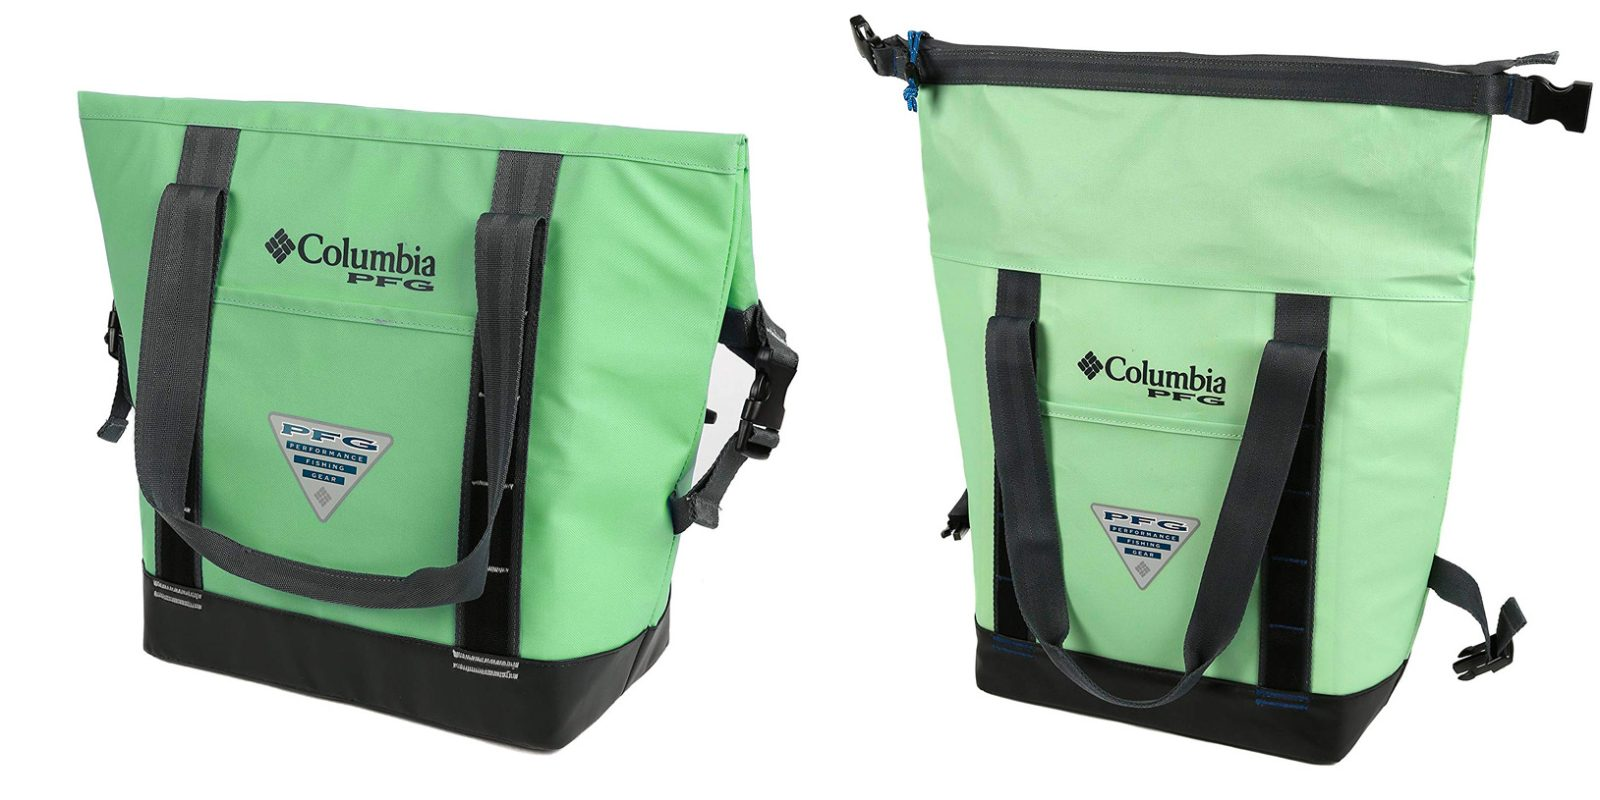 Columbia S Pfg Thermal Tote Is Perfect